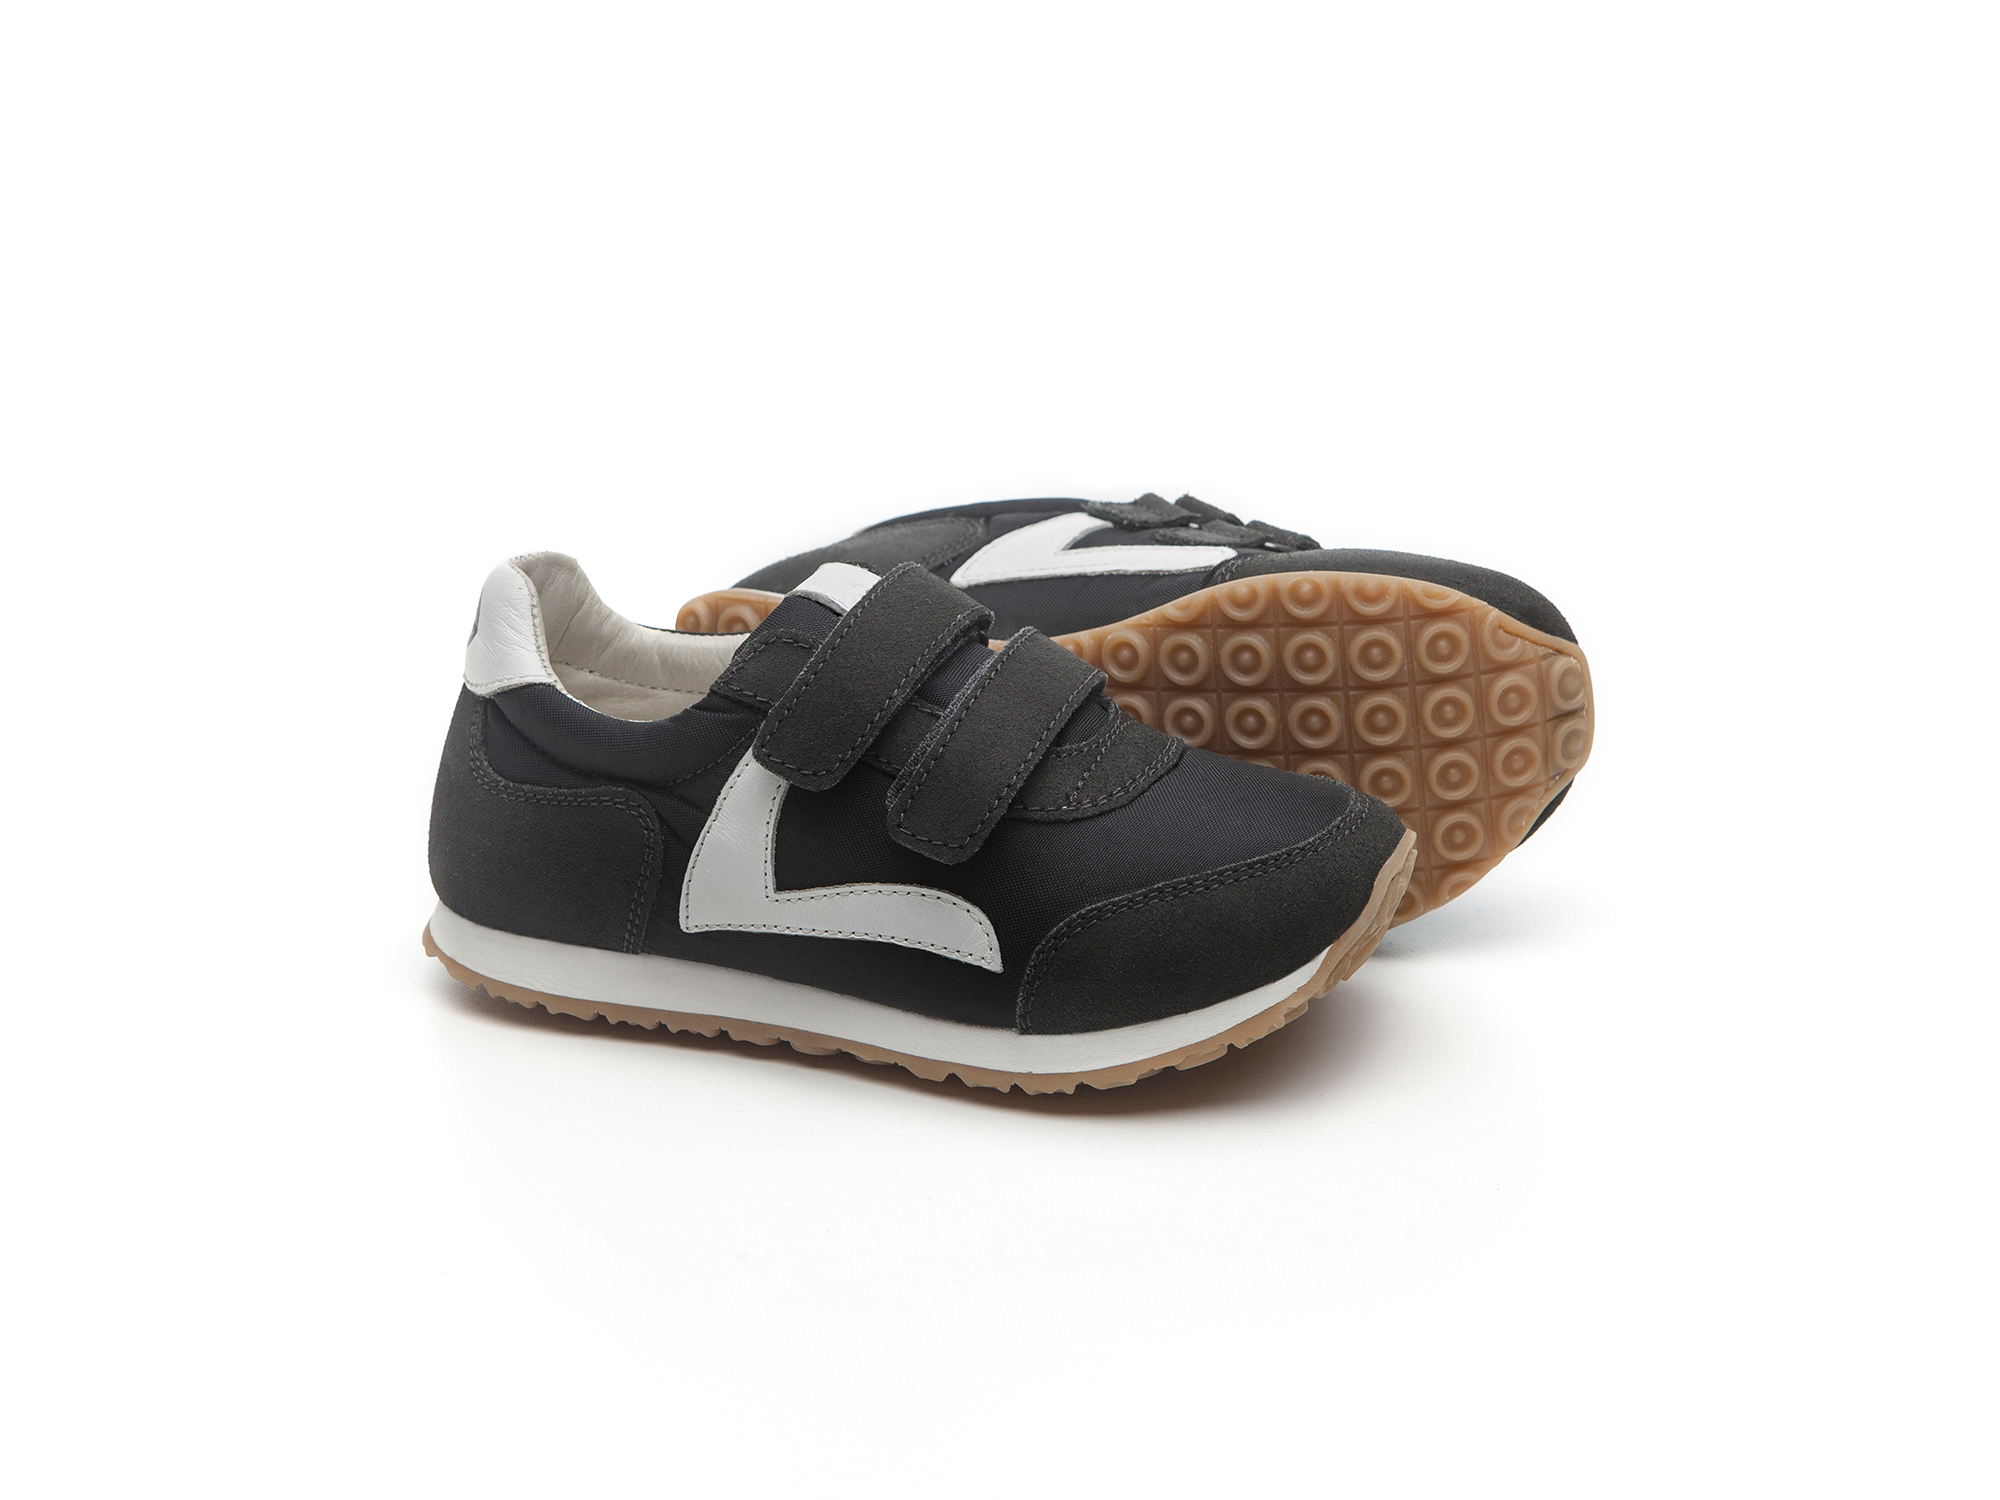 Tênis Little Jump Black Nylon/ Brushed Ash Toddler 2 à 4 anos - 2